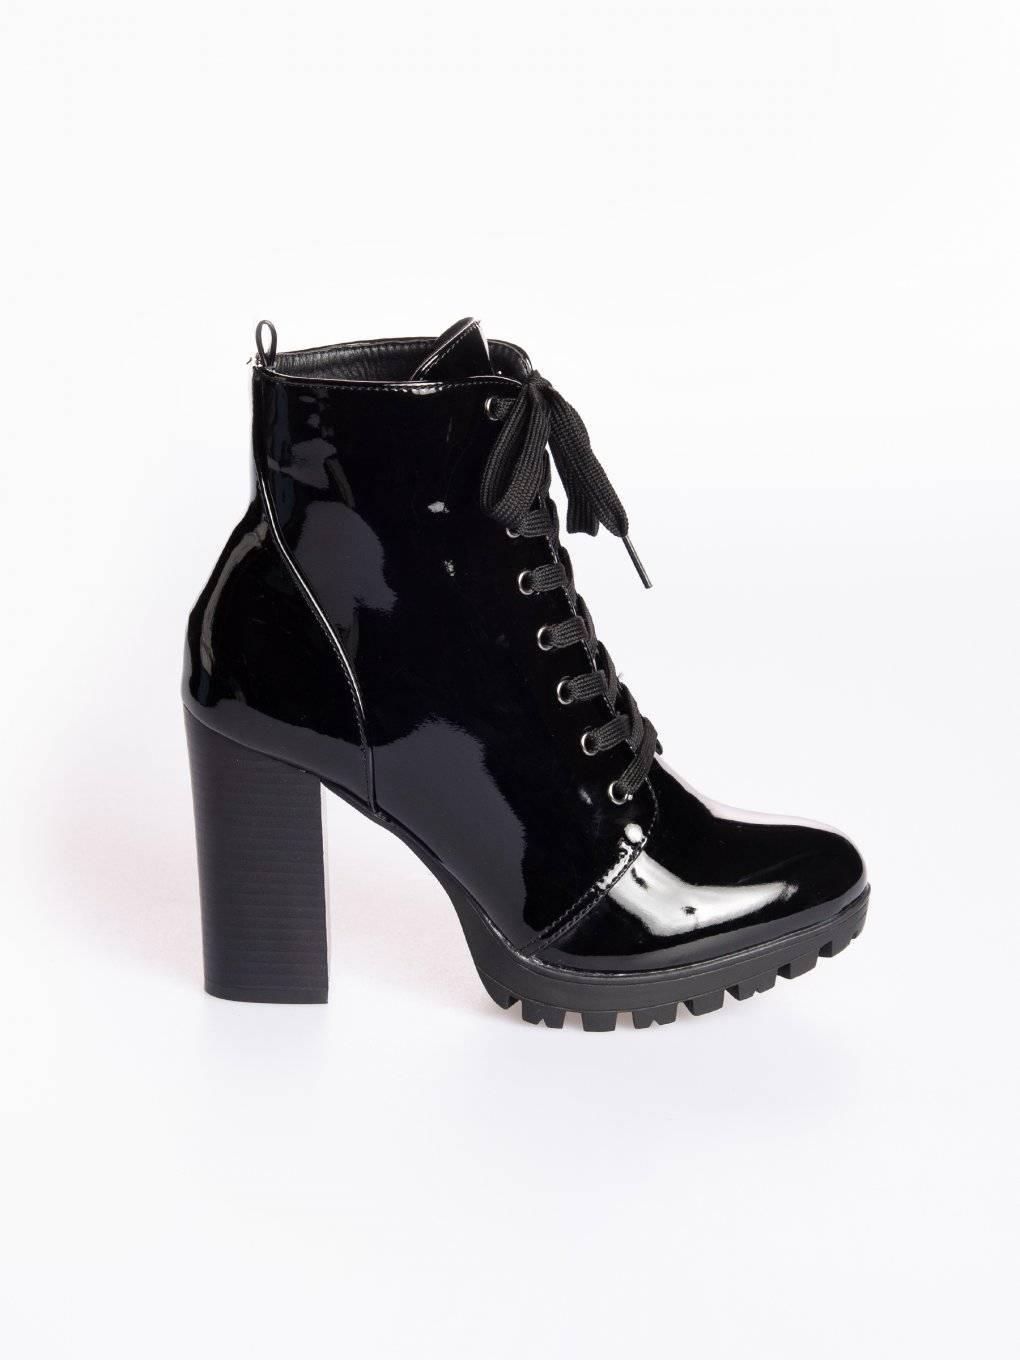 Faux leather lace-up high heeled track sole boots